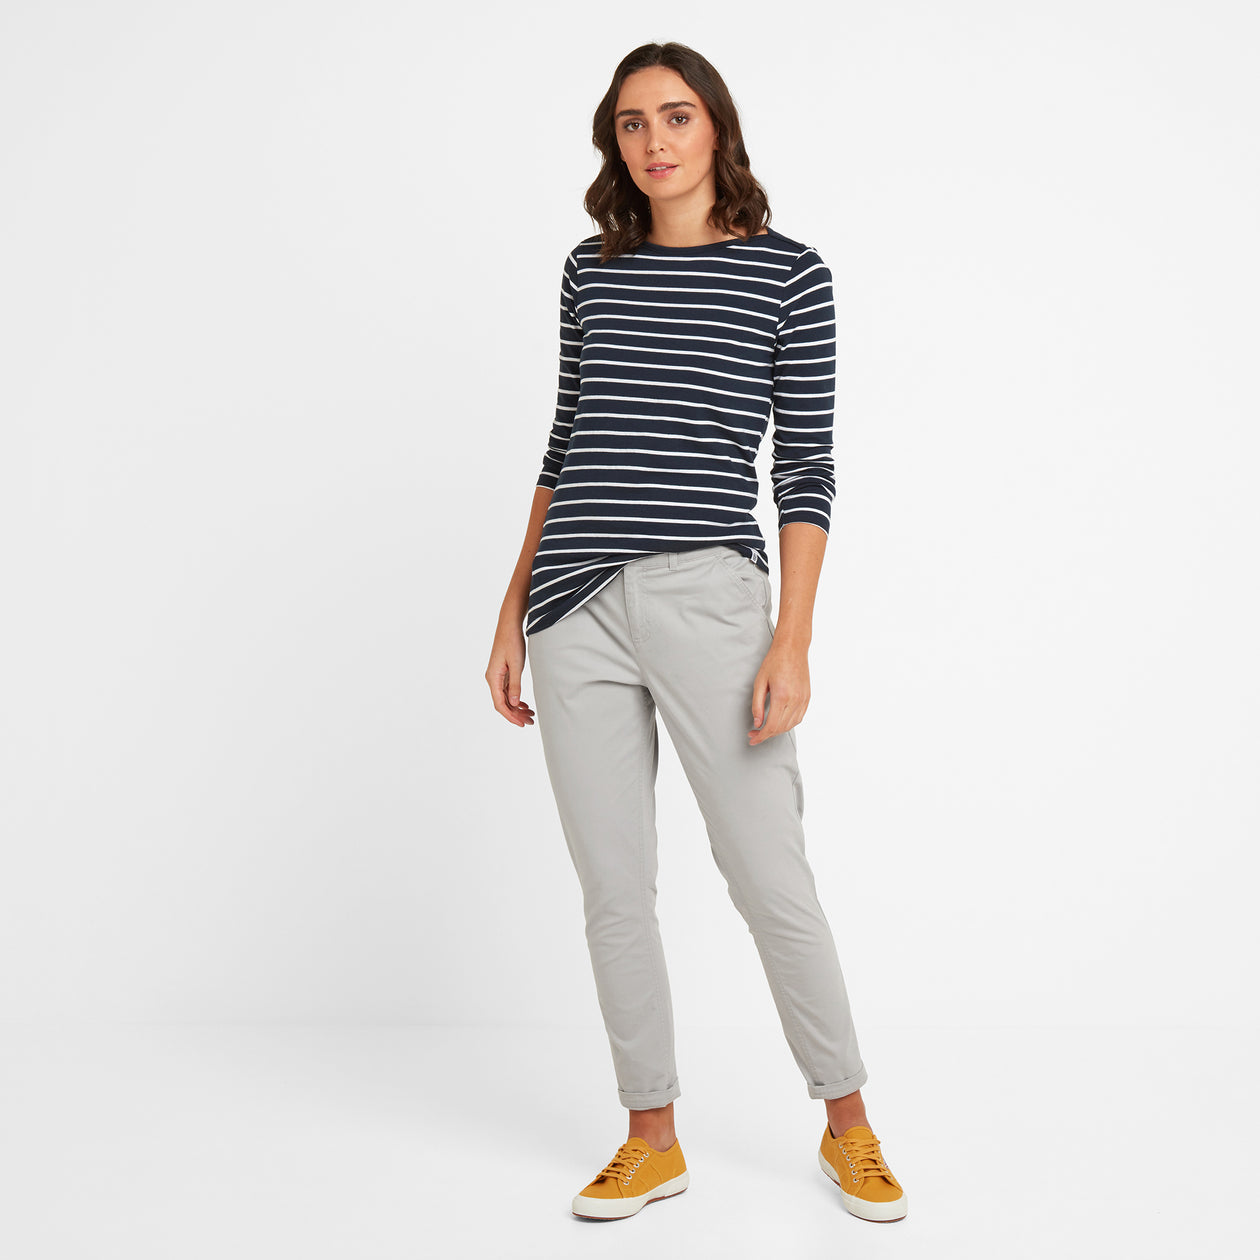 Pickering Womens Trousers Regular - Pebble image 4